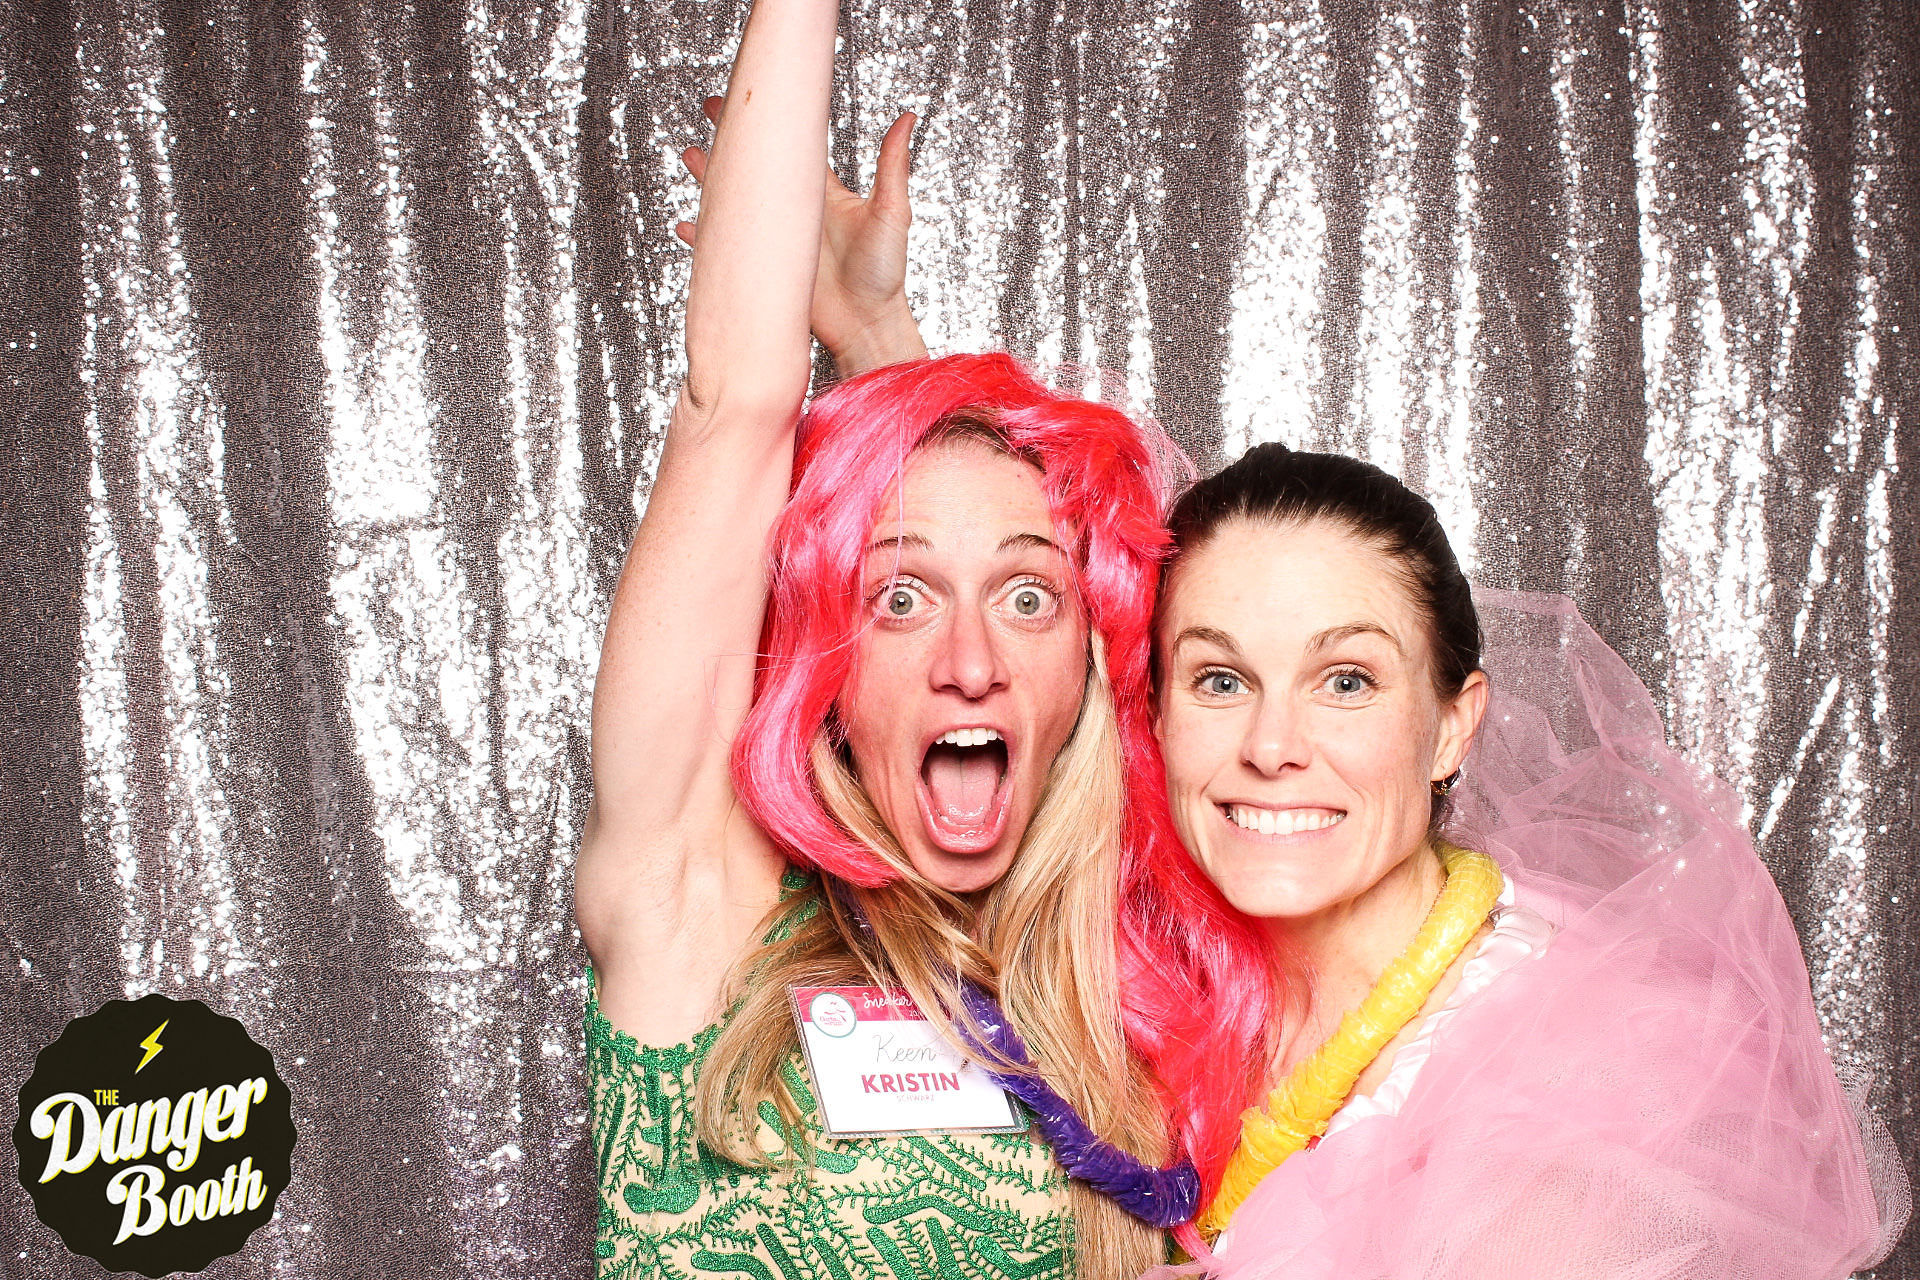 Non-Profit Photo Booth | The Danger Booth